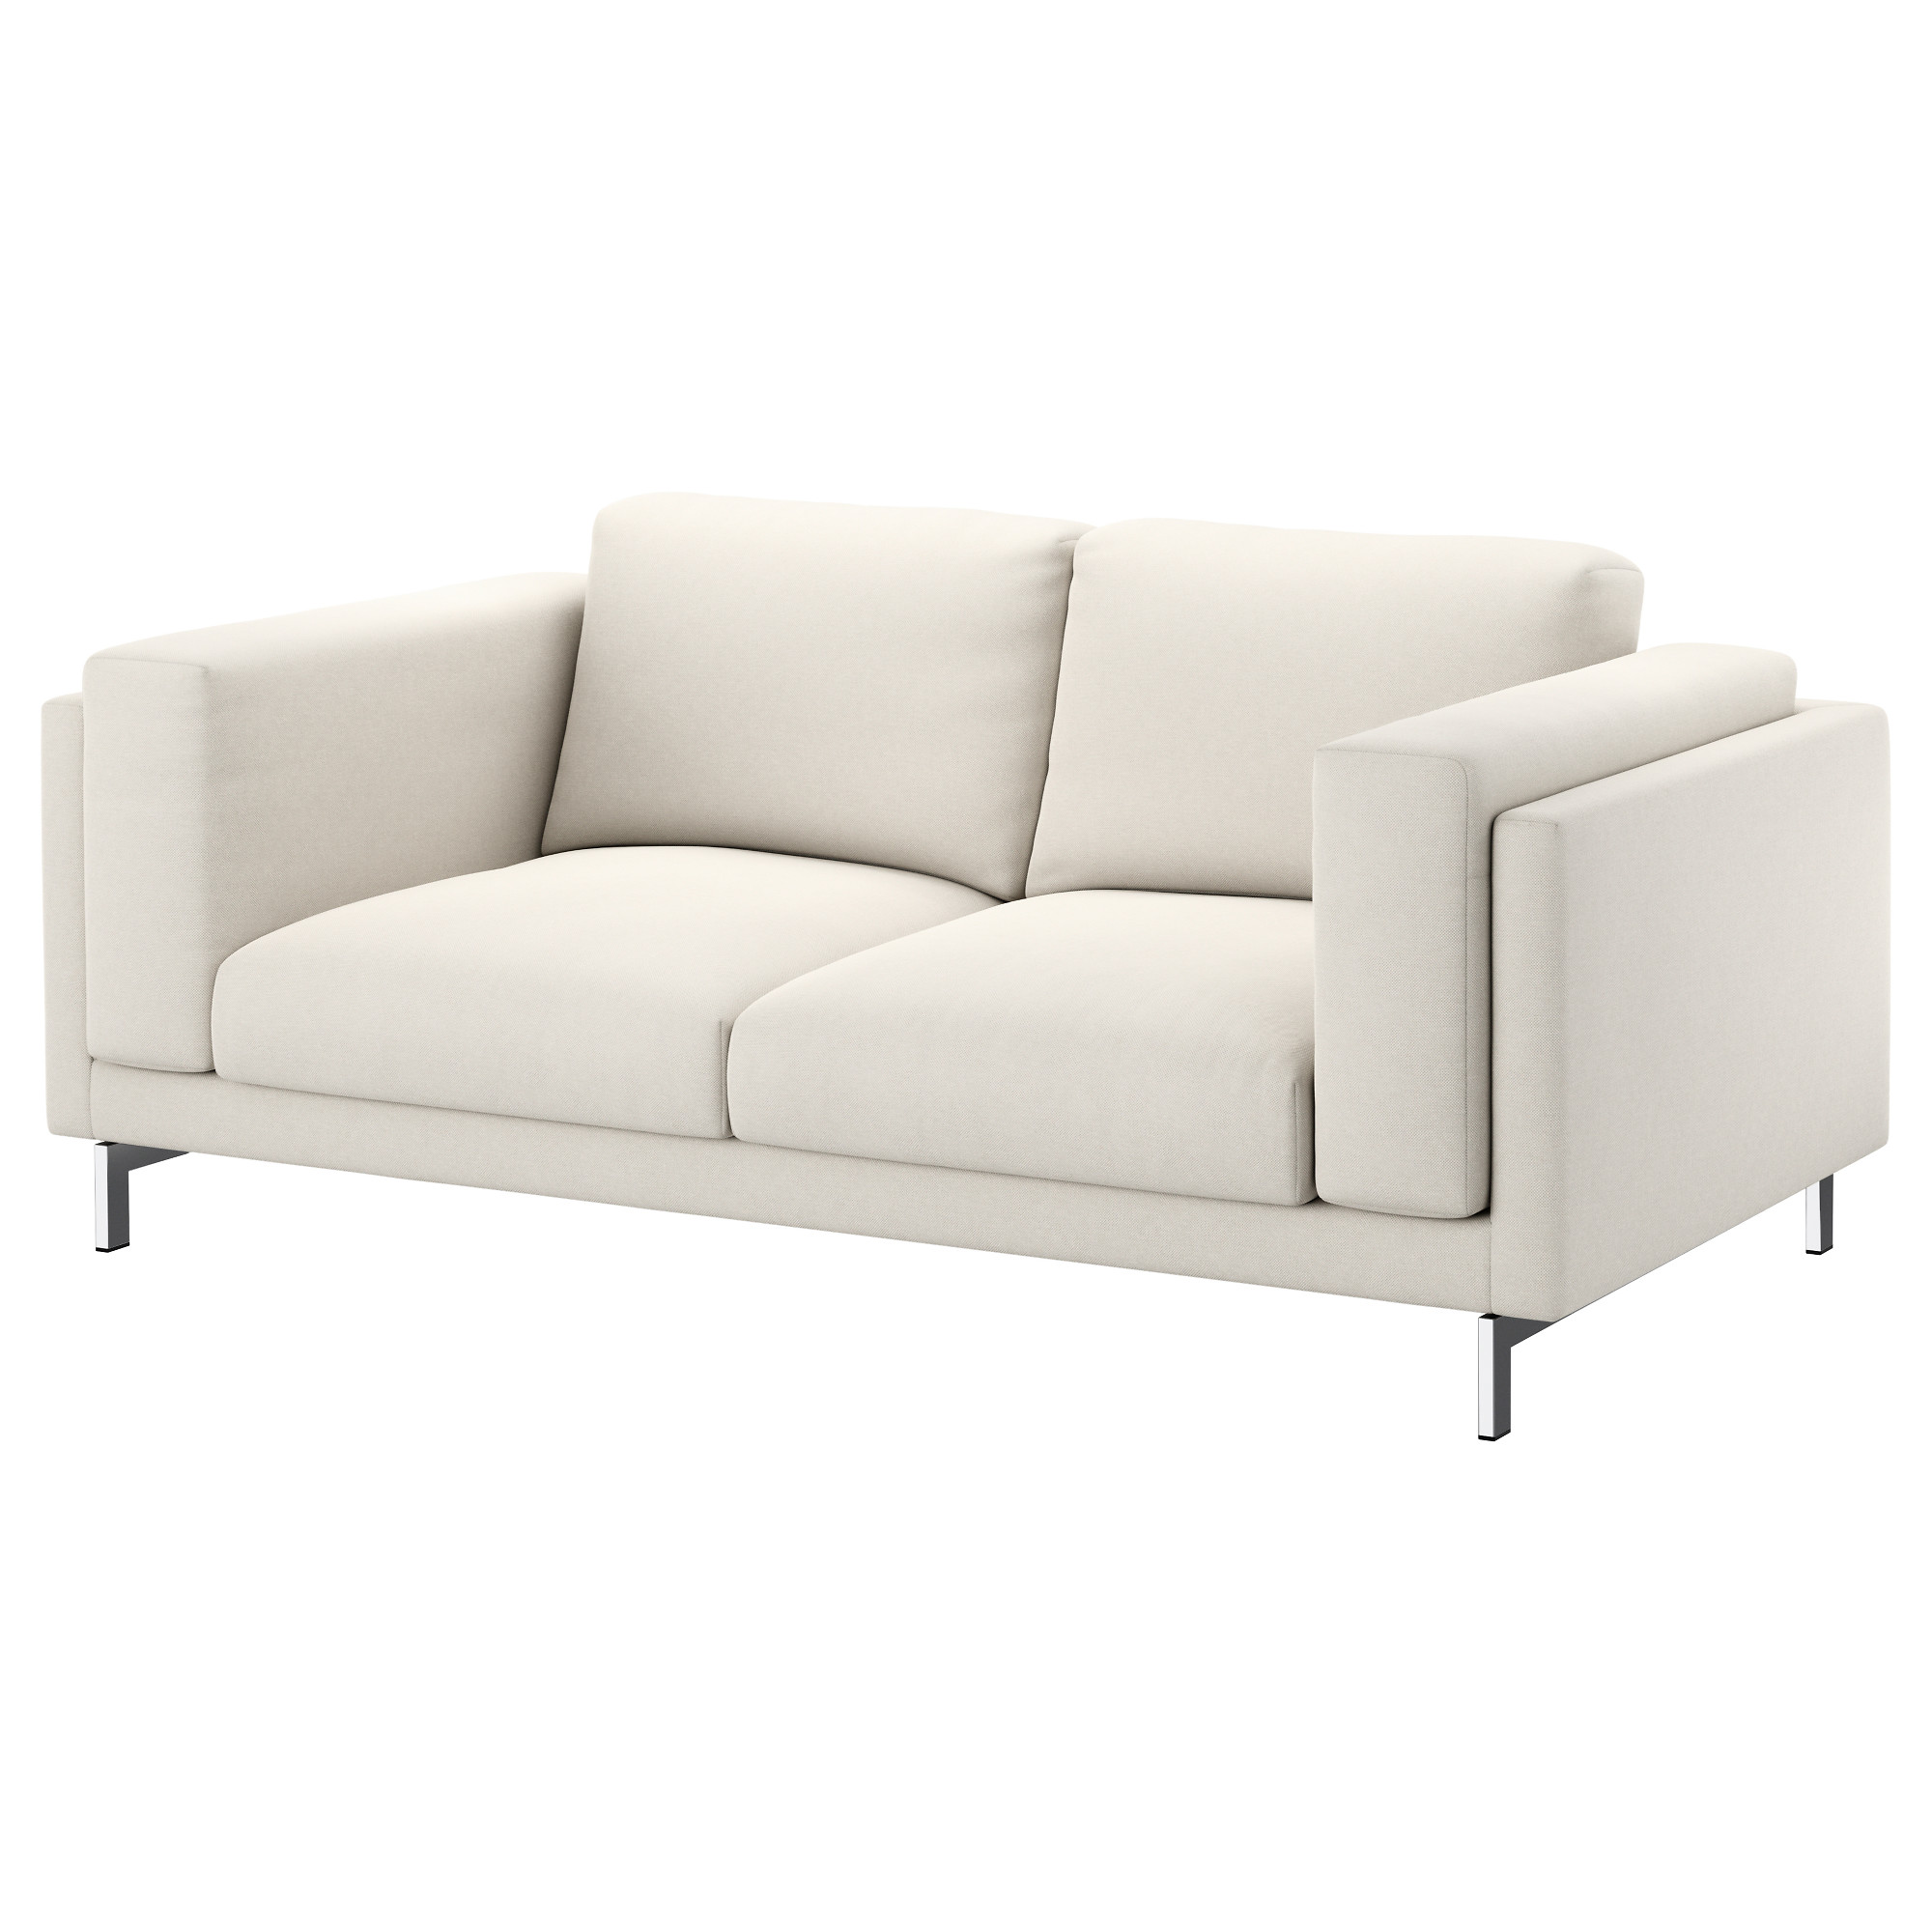 living blue and velvet comfortable sale back white tufted small loveseat set couches leather size sectionals arrange couch wrap sofa black high with of chaise futon around modern full grey room microfiber sectional light brown l reclining for best sofas recliners